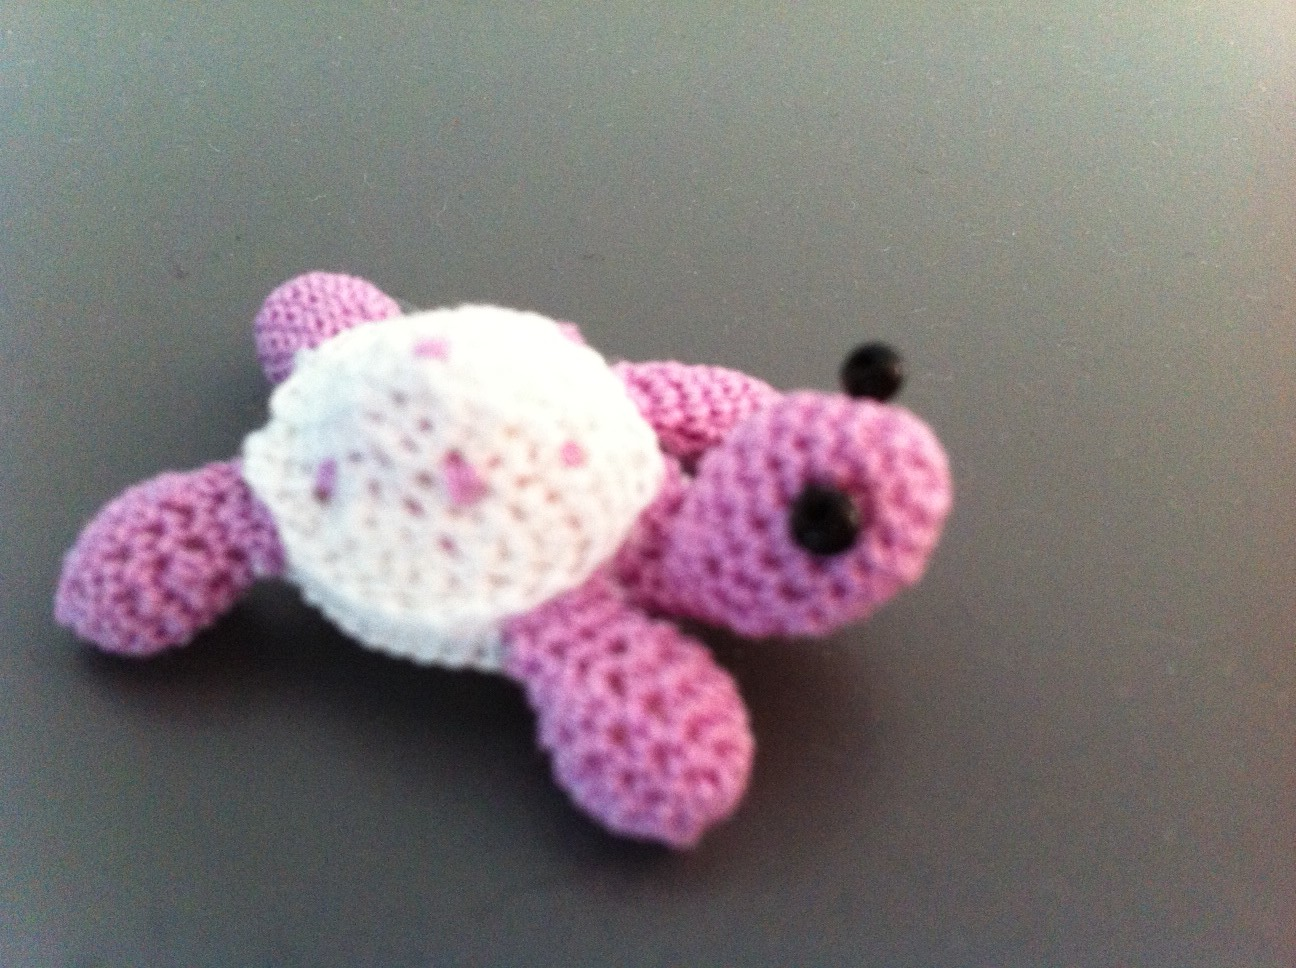 Amigurumi Zeitschrift 2016 : Amigurumi zeitschrift nr 3 ~ kalulu for .